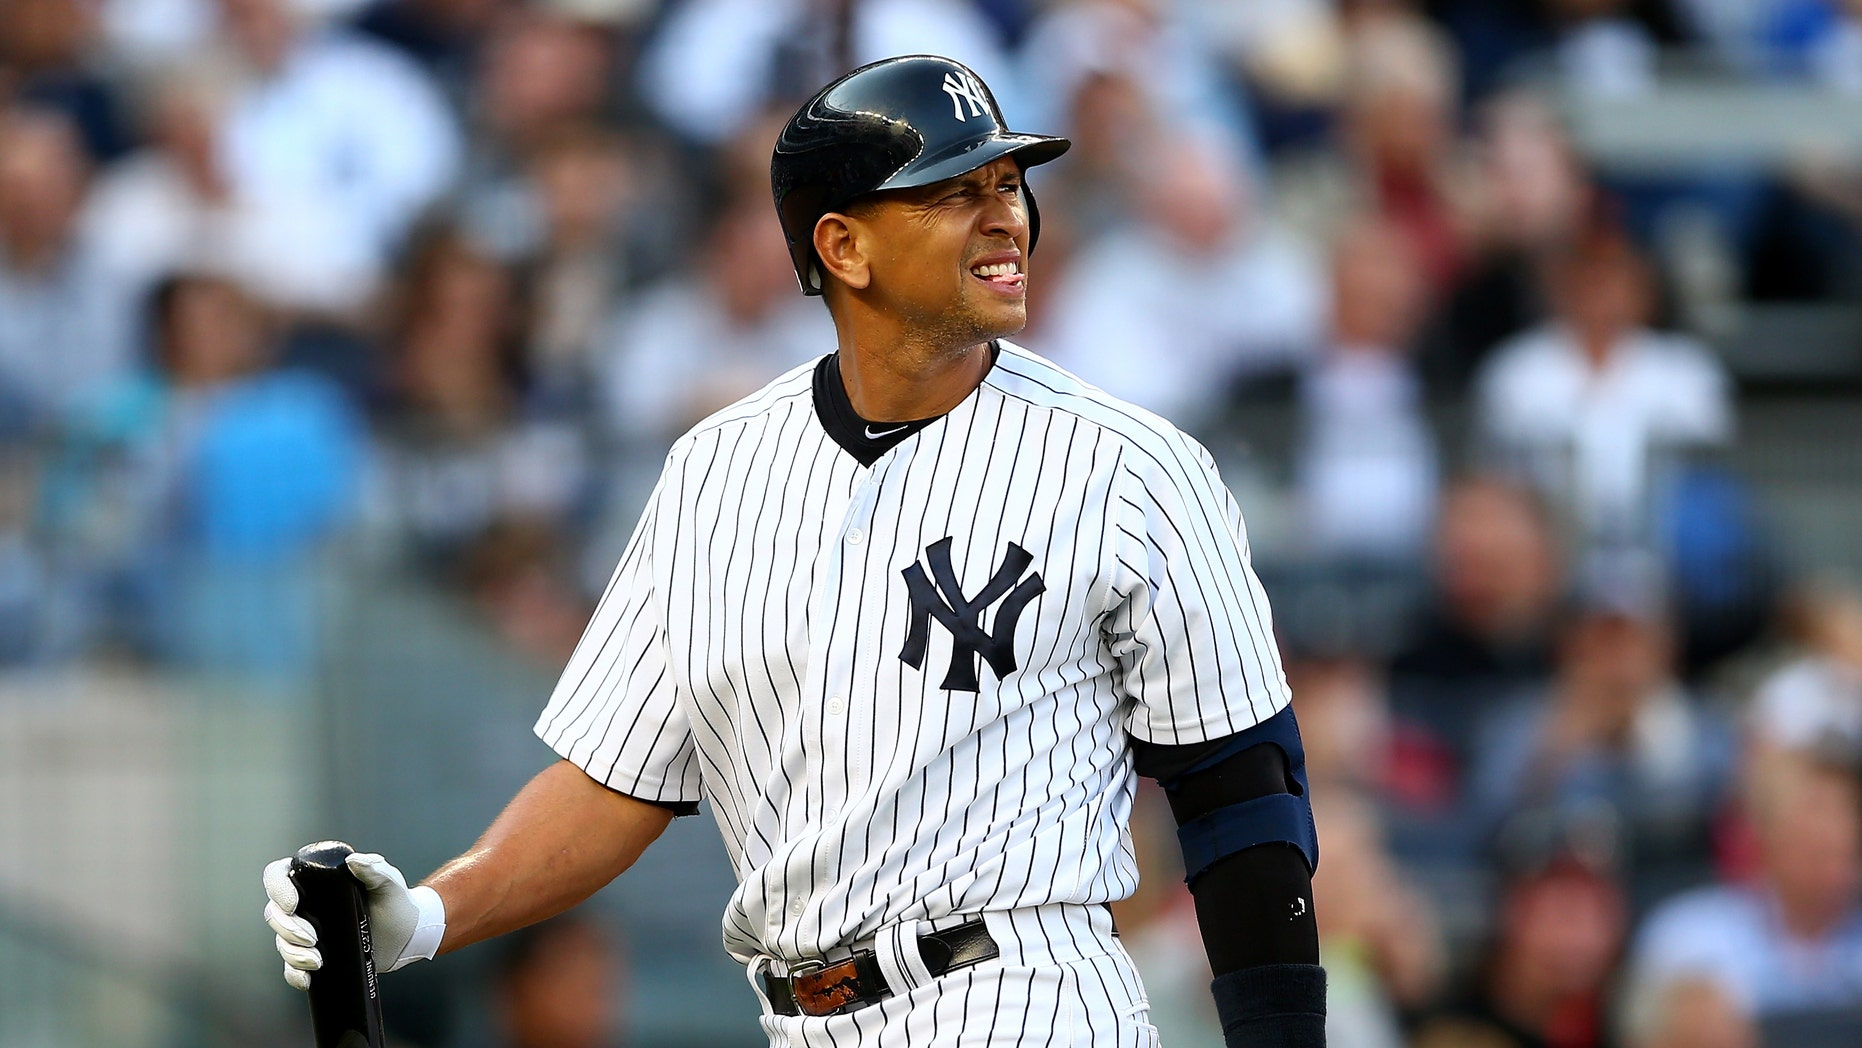 NEW YORK, NY - OCTOBER 14:  Alex Rodriguez #13 of the New York Yankees reacts as he walks back to the dugout after he struck out in the bottom of the second inning against the Detroit Tigers during Game Two of the American League Championship Series at Yankee Stadium on October 14, 2012 in the Bronx borough of New York City.  (Photo by Elsa/Getty Images)